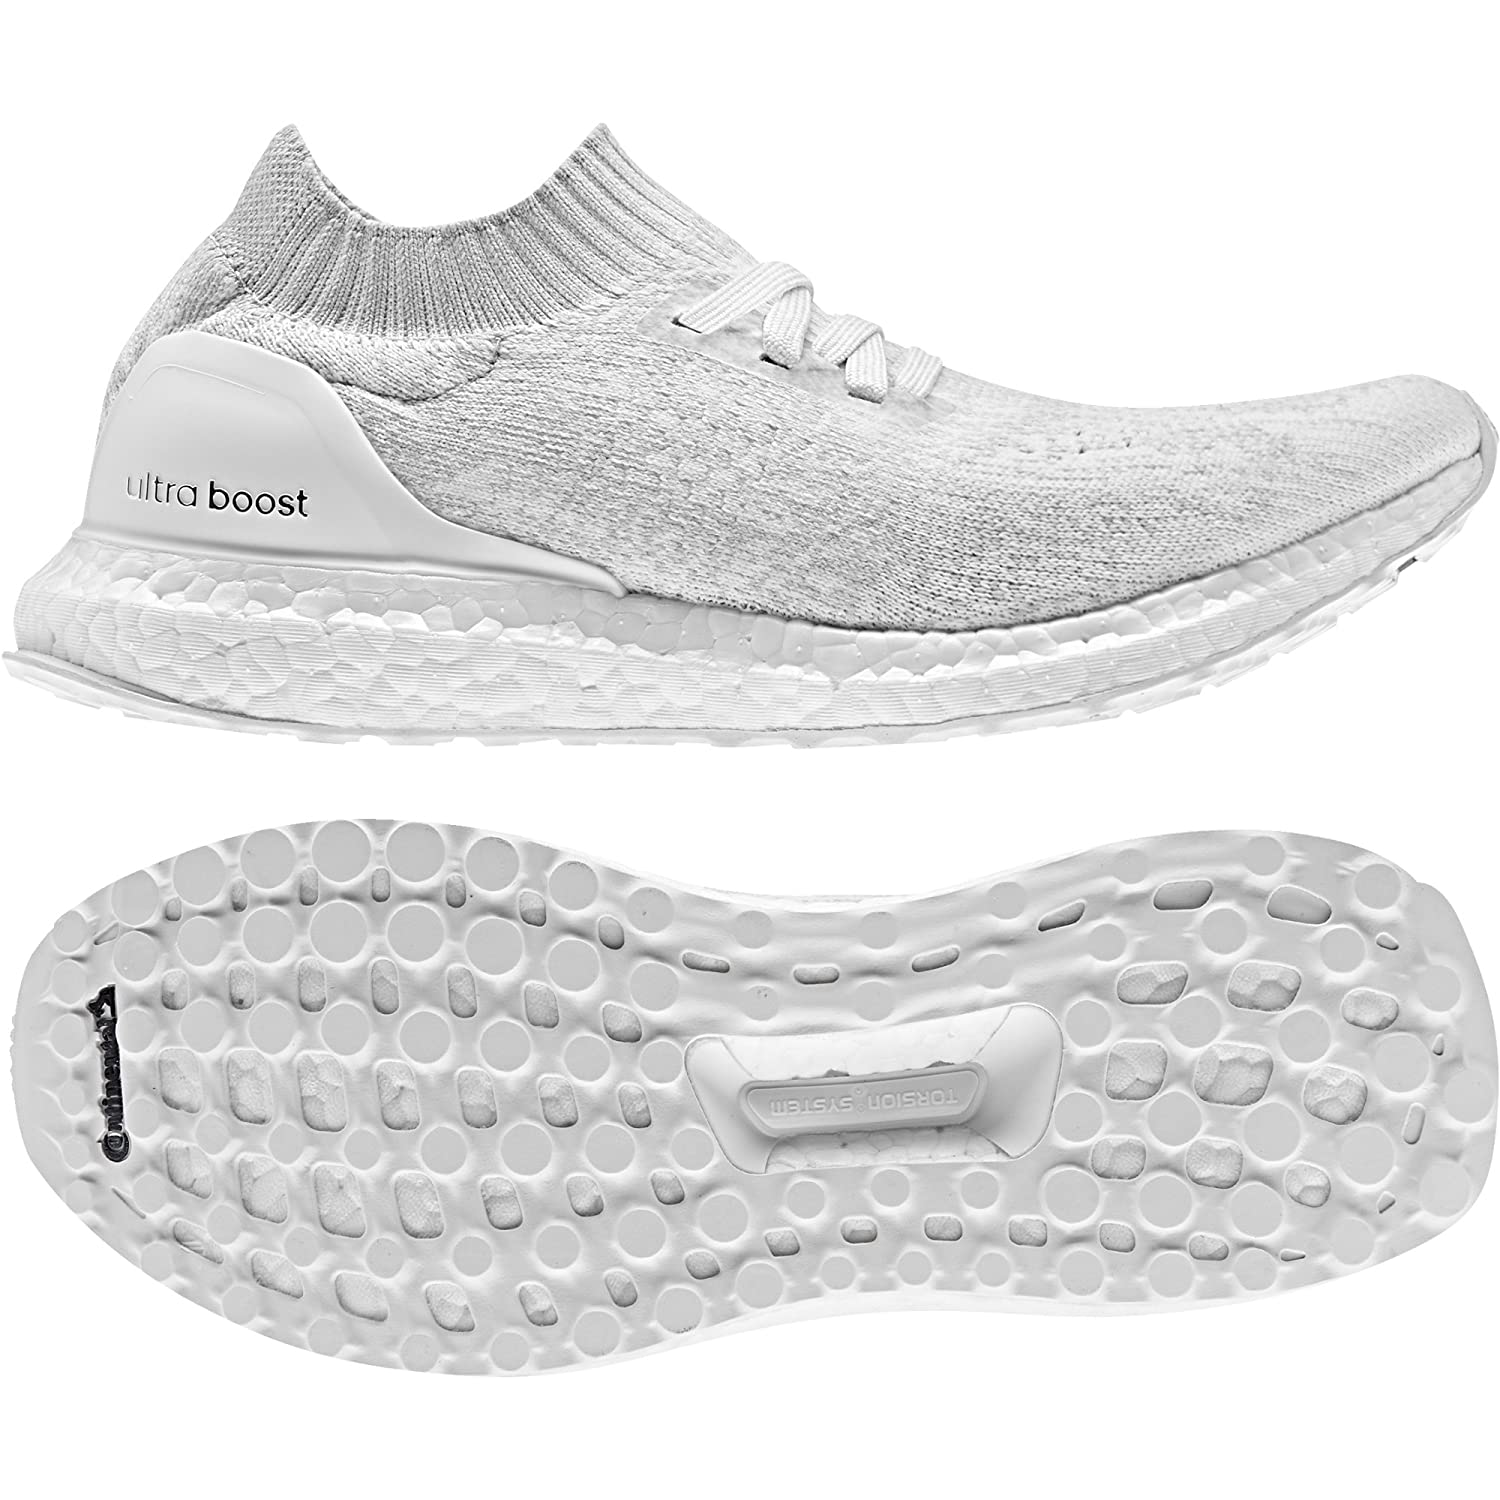 a91fed03b6 Amazon.com | adidas Ultraboost Uncaged Womens Running Trainers ...